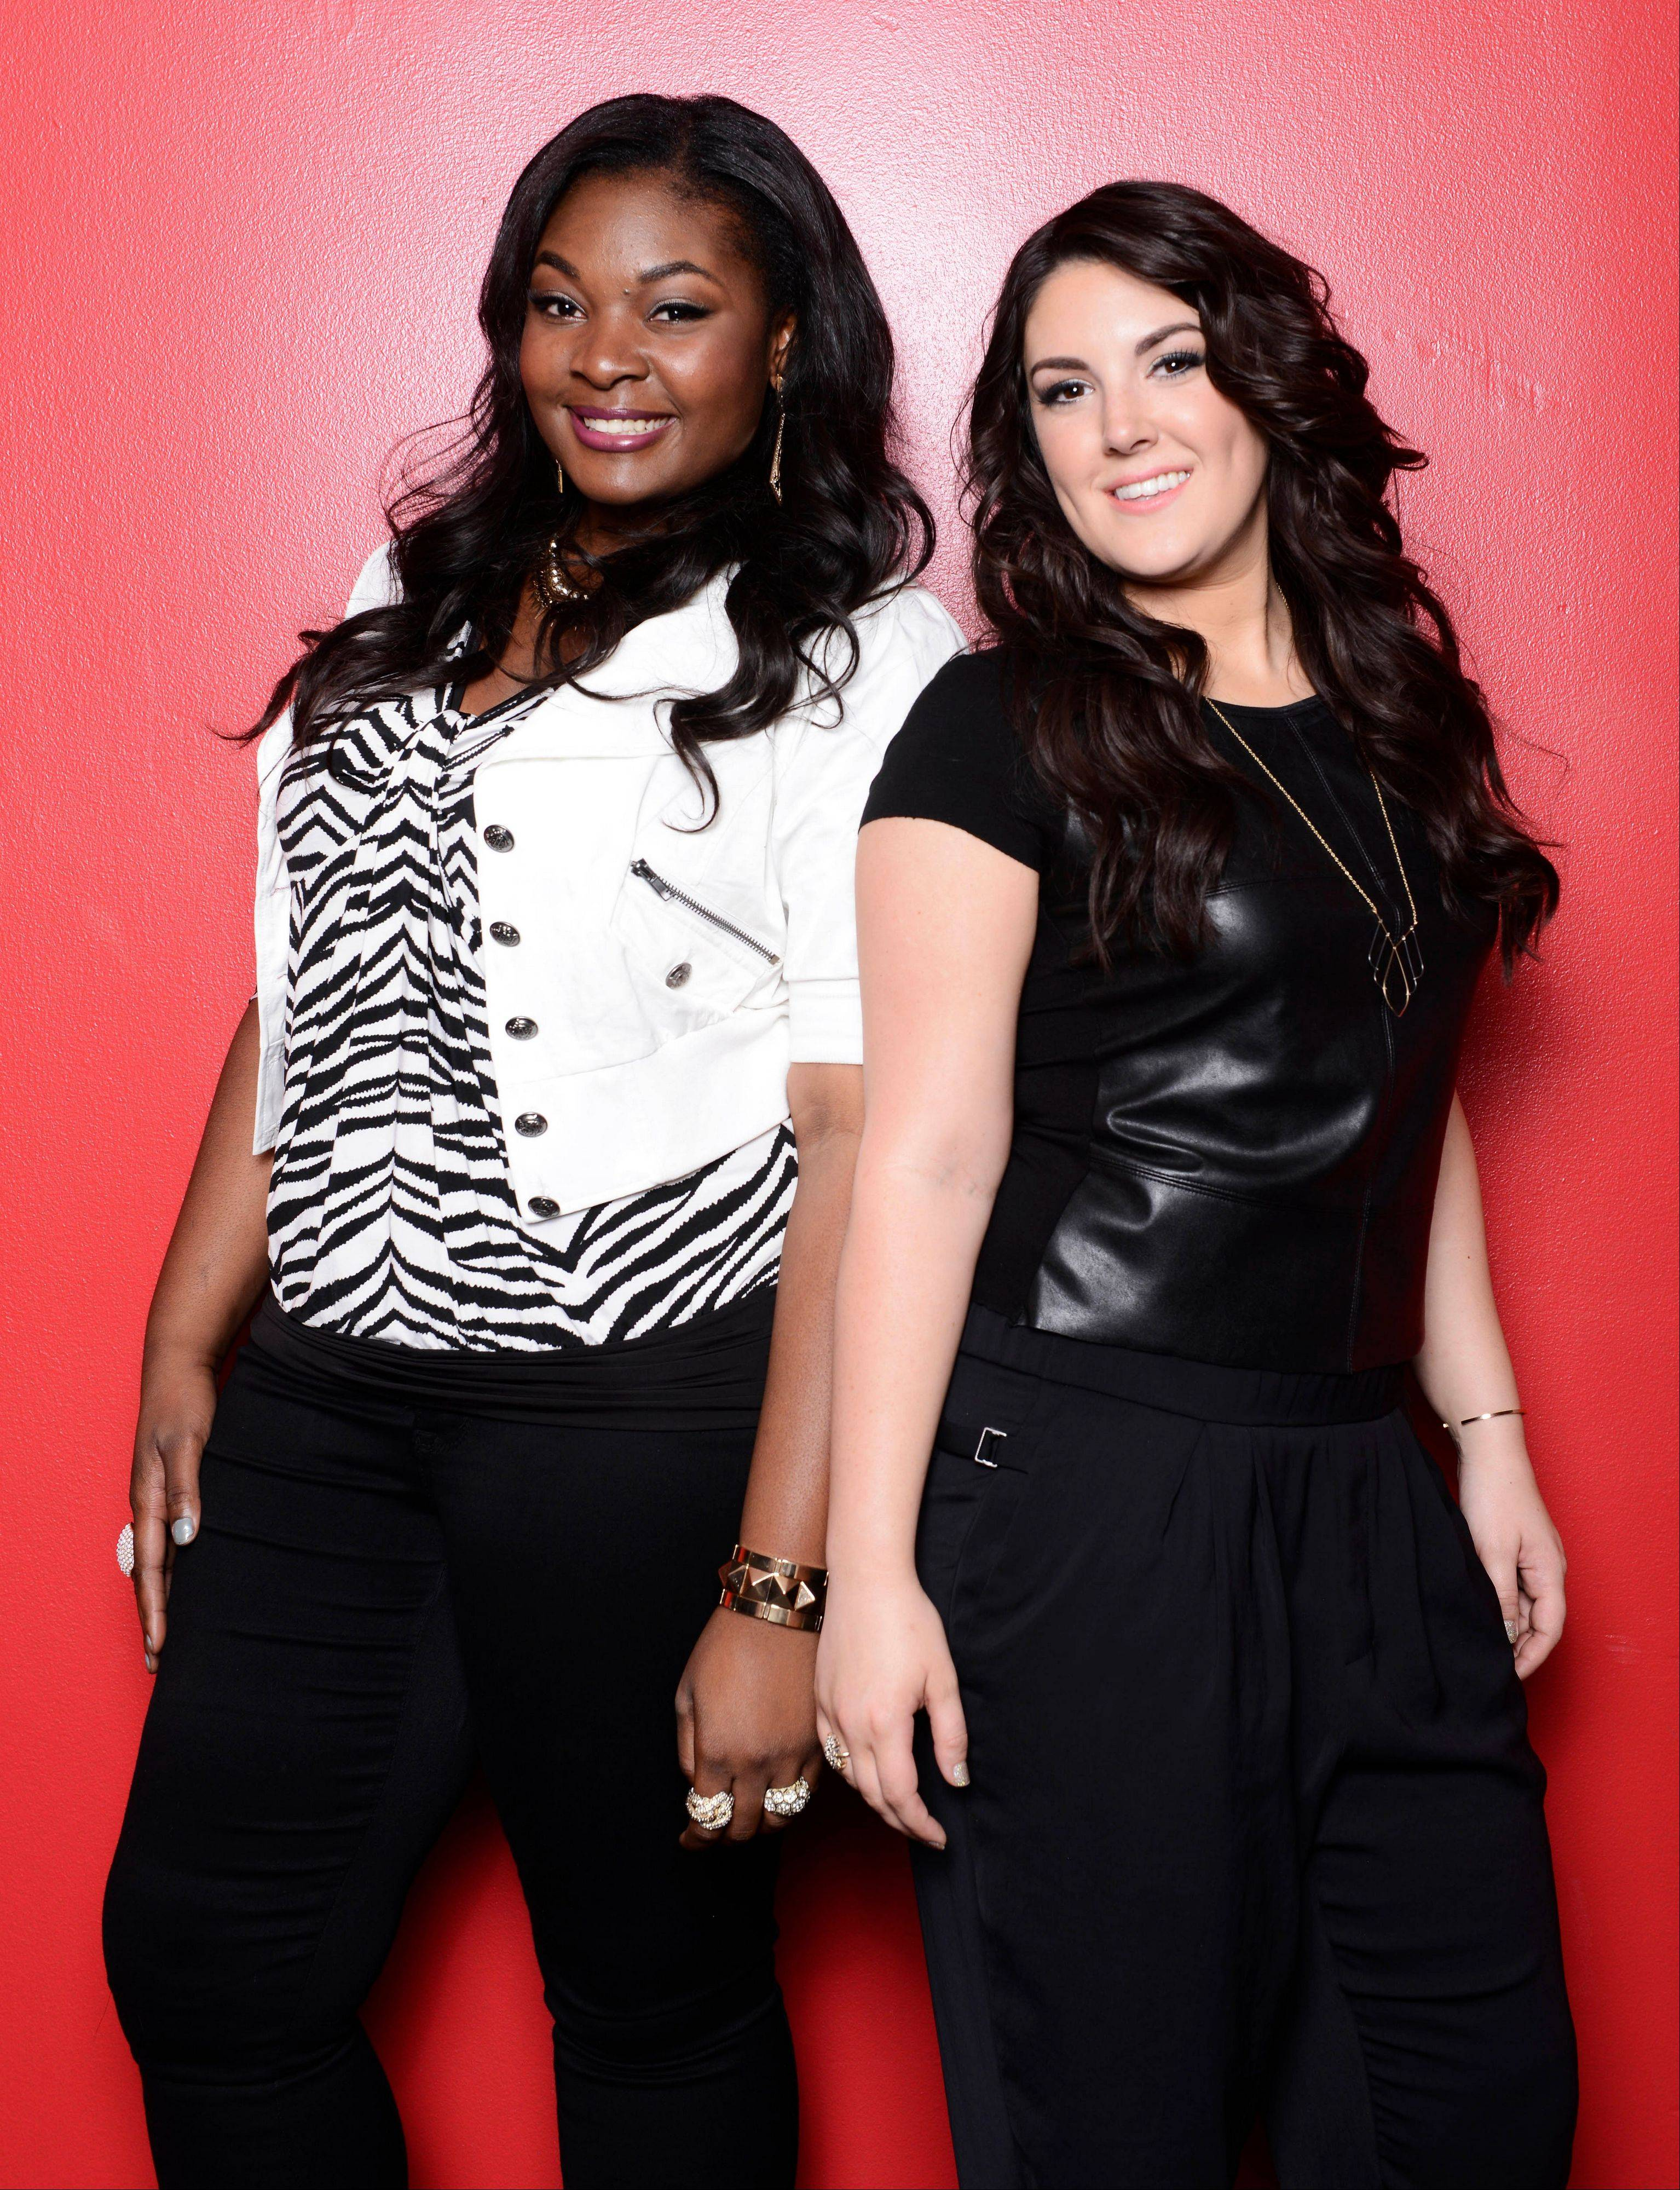 "Candice Glover, left, and Kree Harrison face off in ""American Idol: The Final 2."" It's a showdown between the 23-year-old R&B vocalist Glover of St. Helena Island, S.C., and the 22-year-old country crooner Harrison of Woodville, Texas."